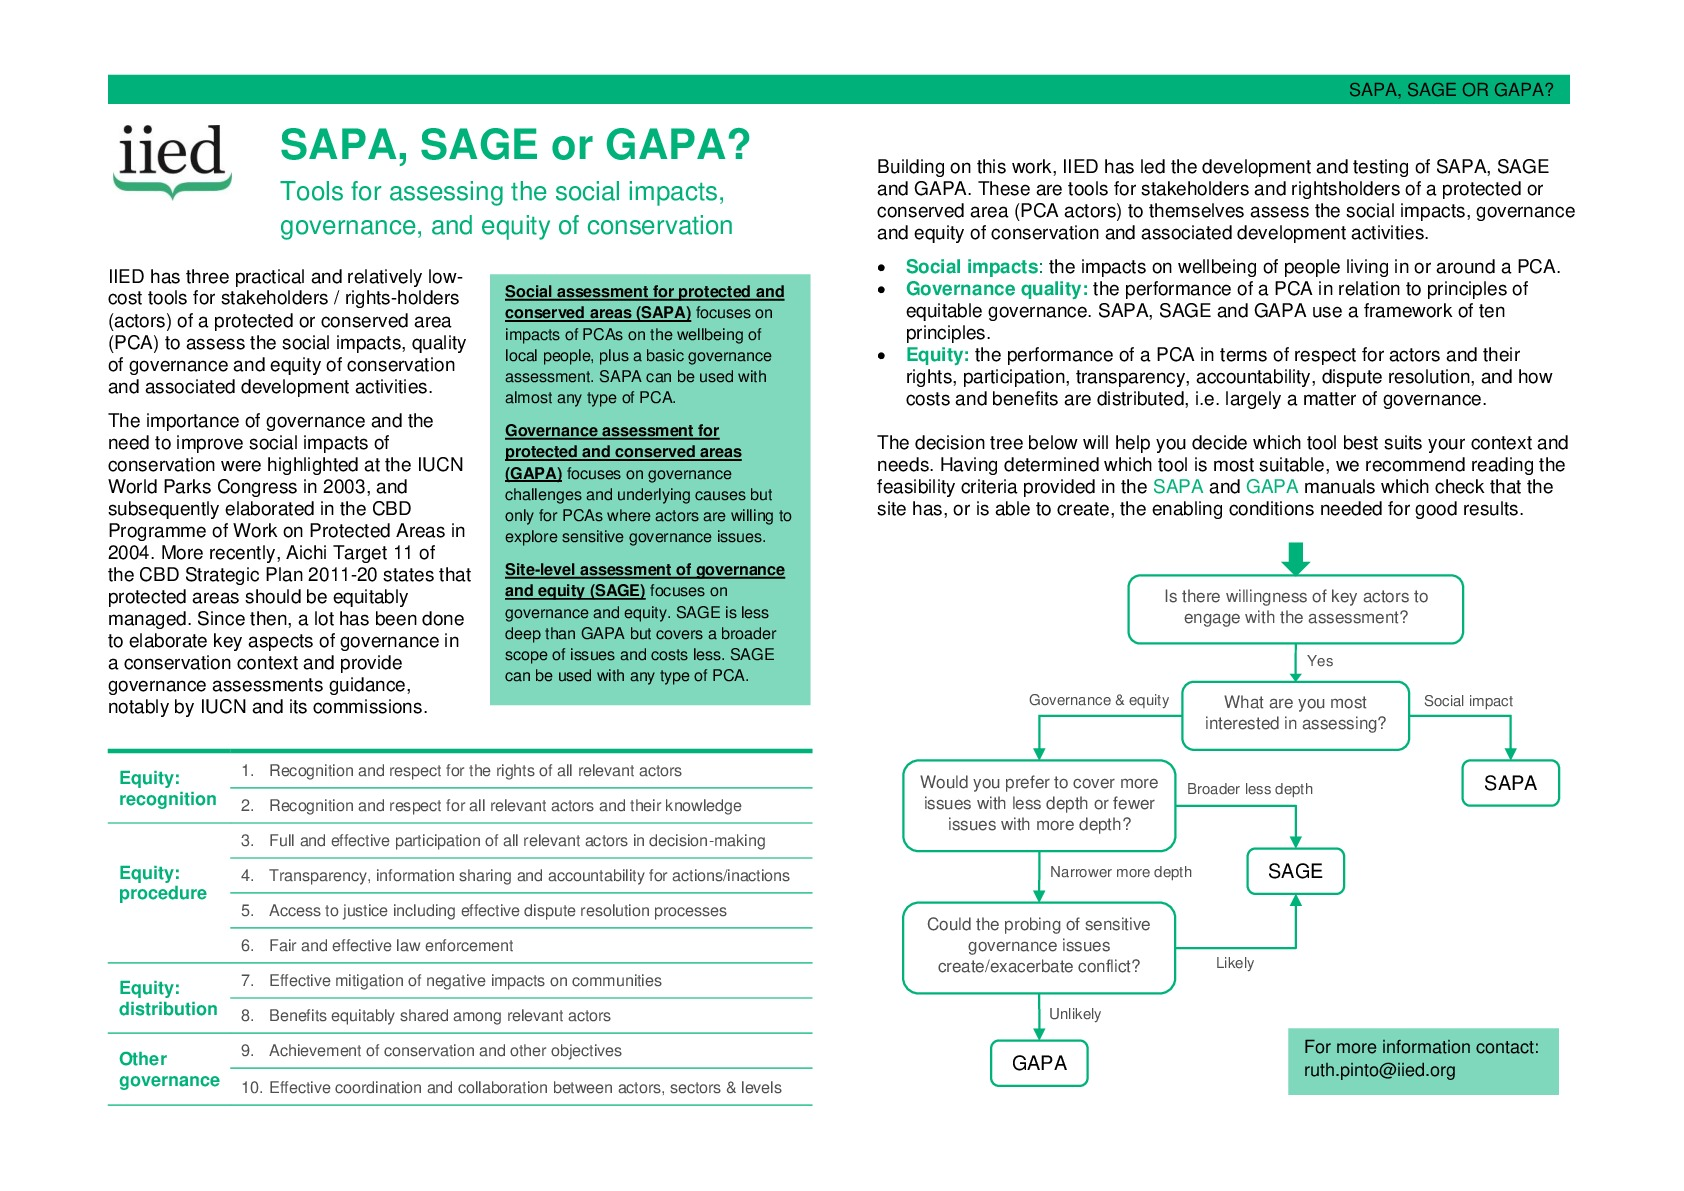 SAPA, SAGE or GAPA? Tools for assessing the social impacts, governance, and equity of conservation